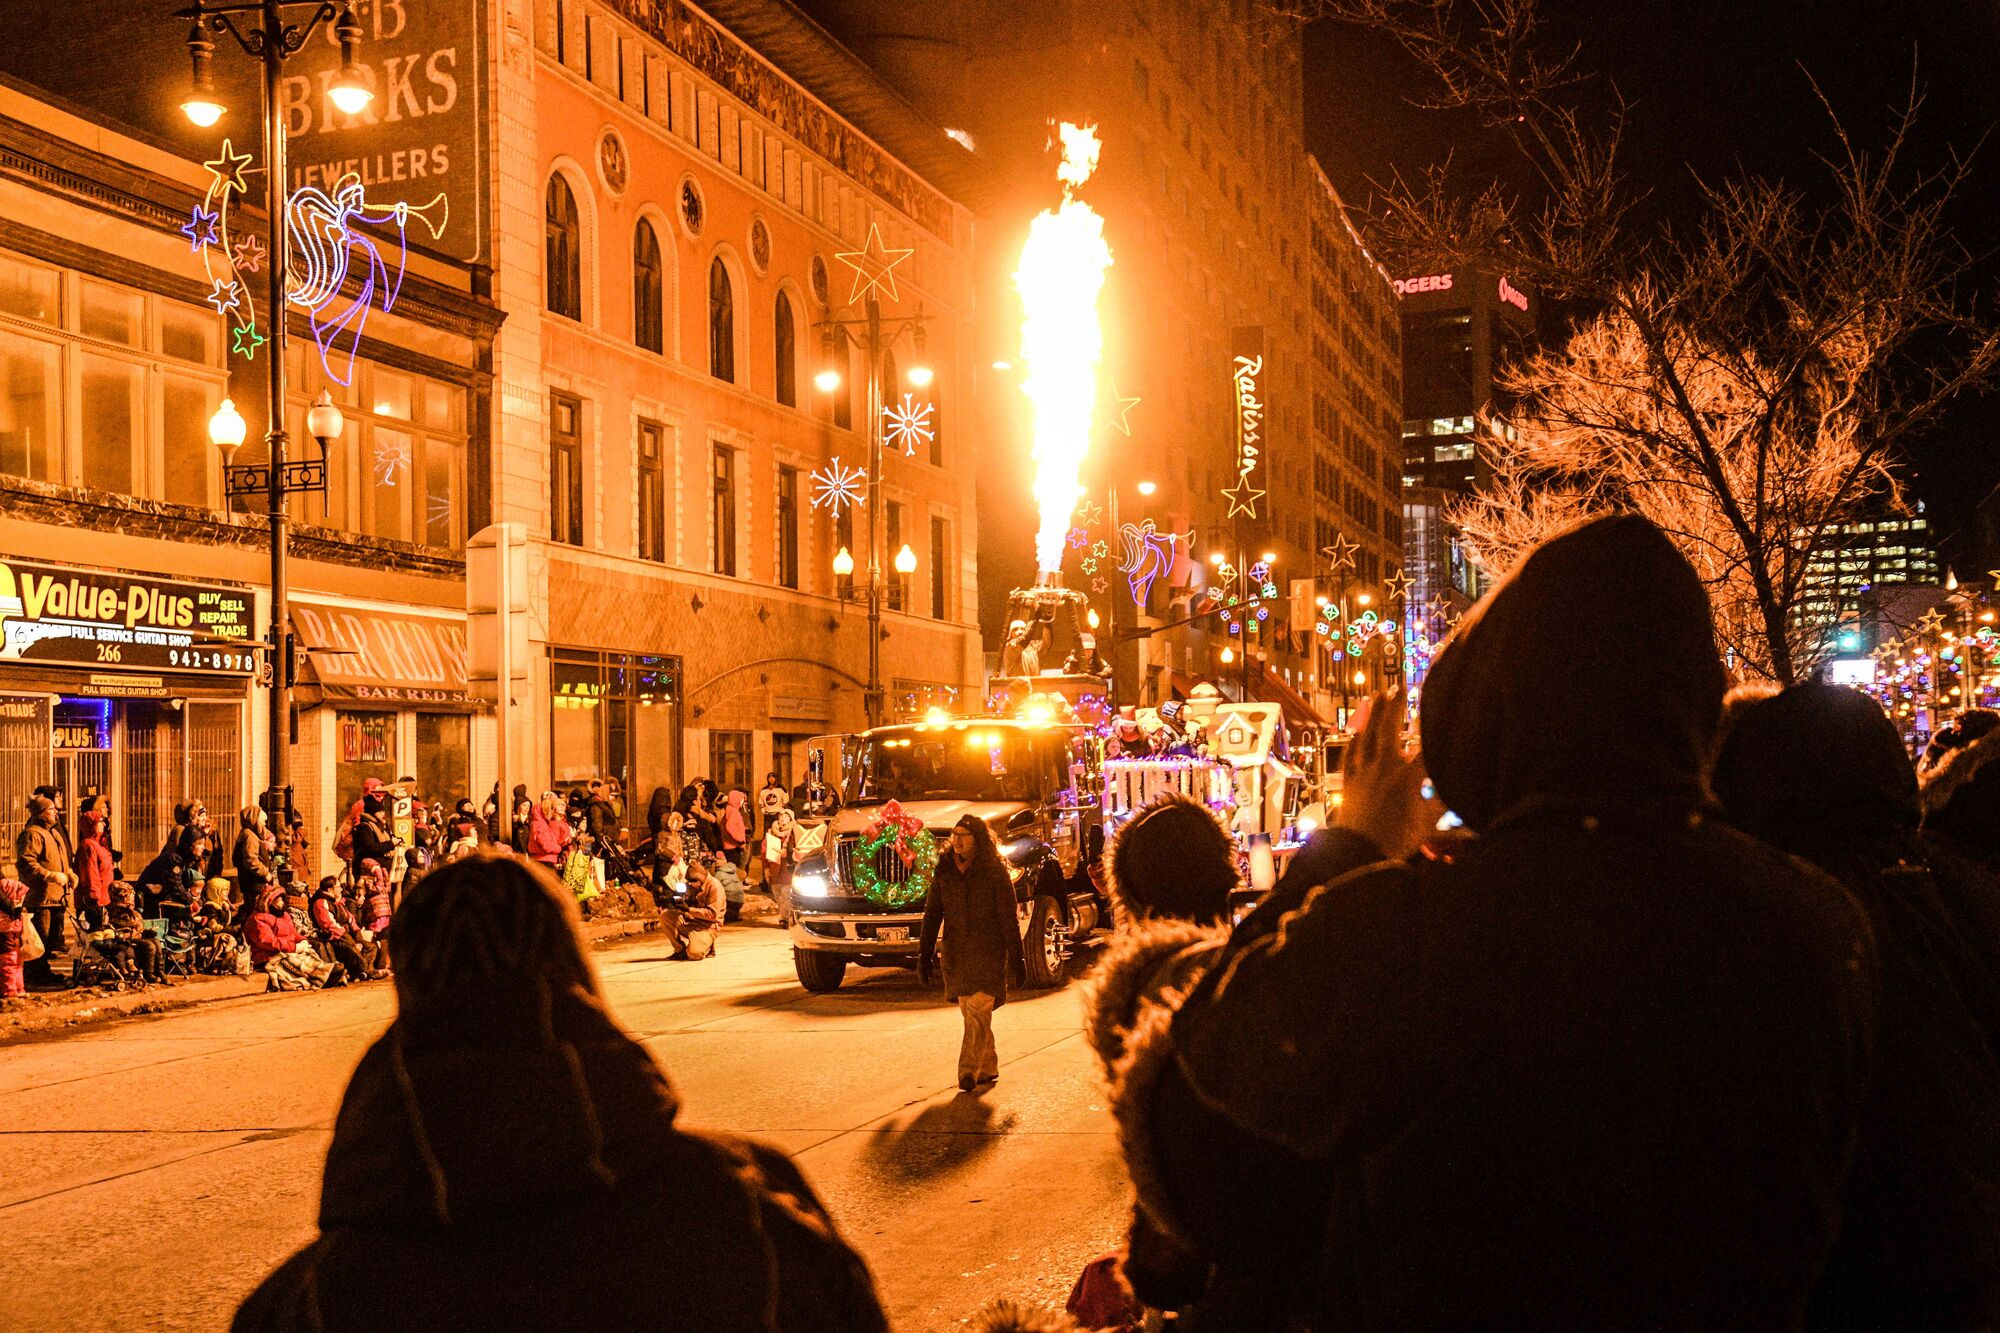 The Streets are alive with Christmas cheer for last year's Santa Clause Parade Nov. 18.